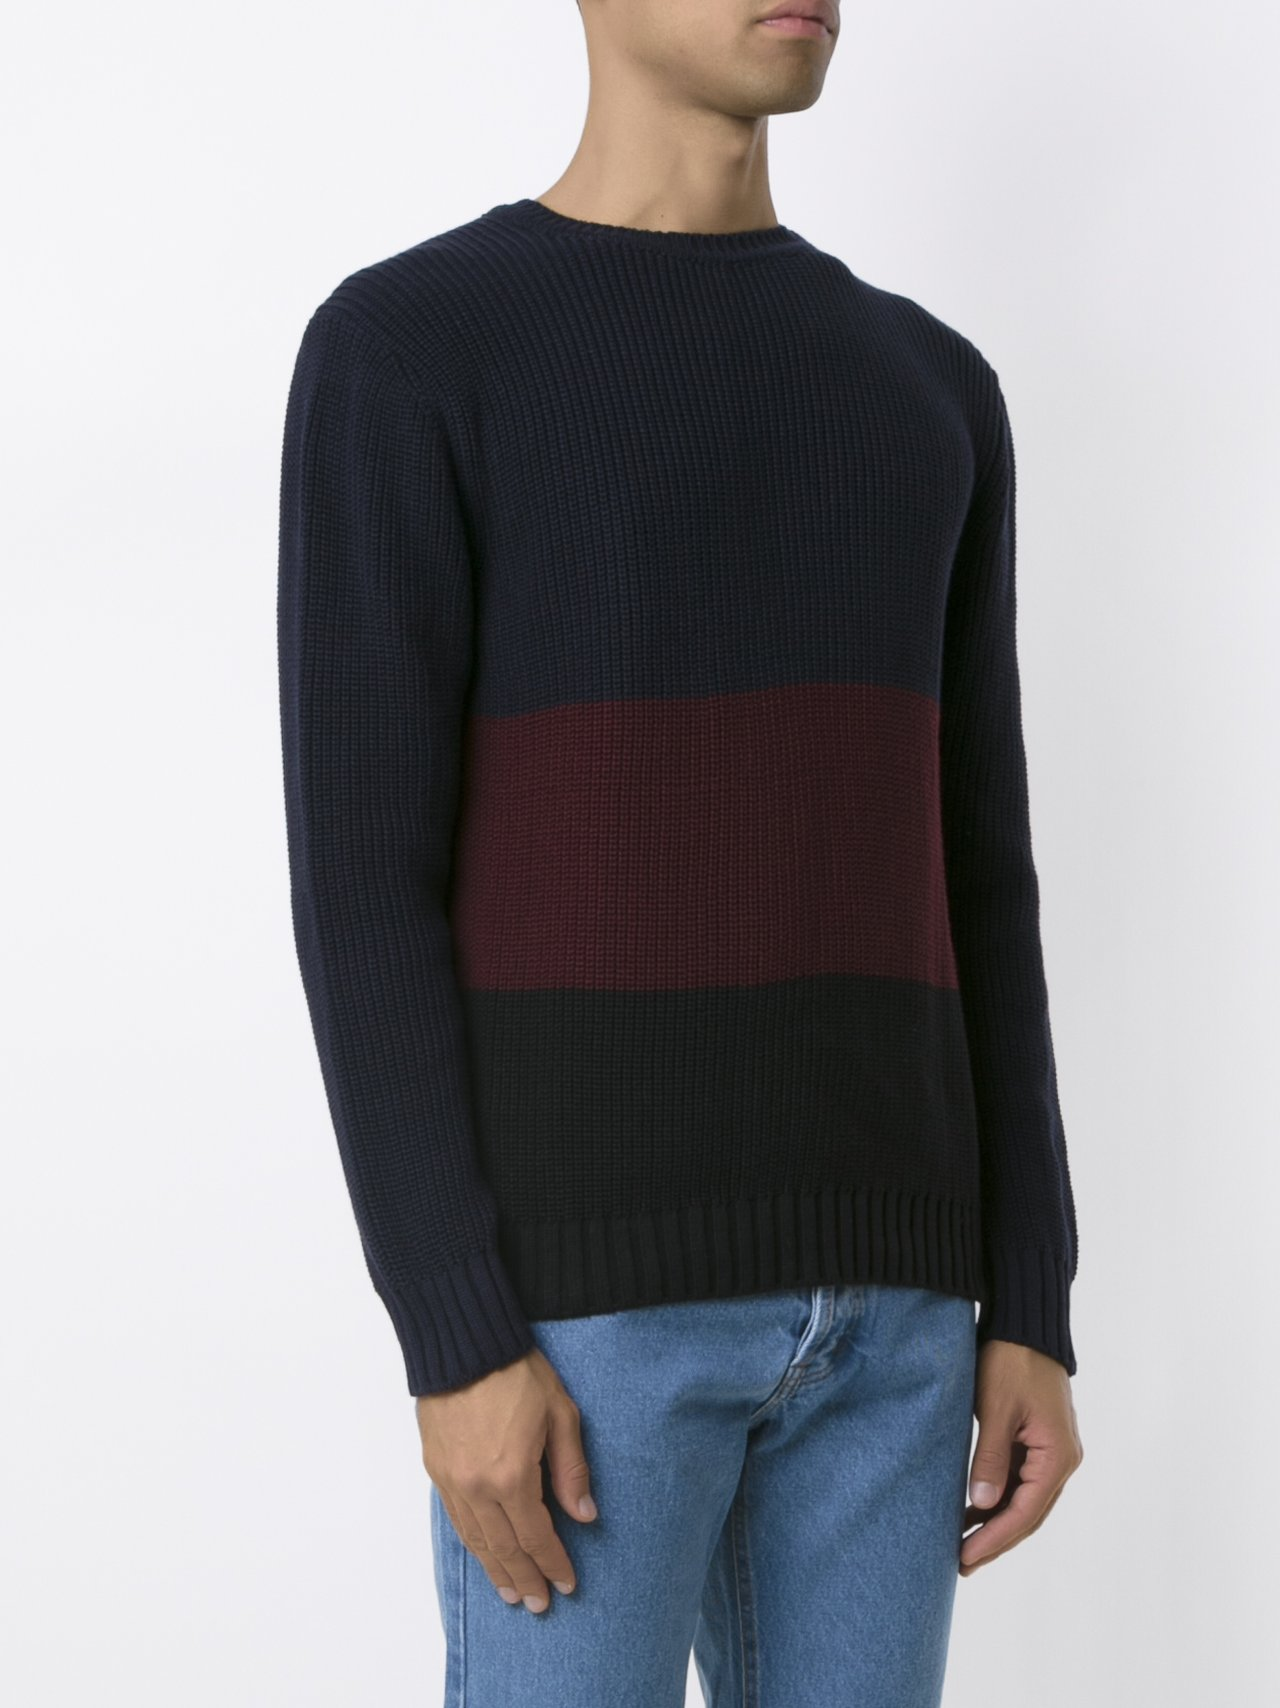 Sweater Listras